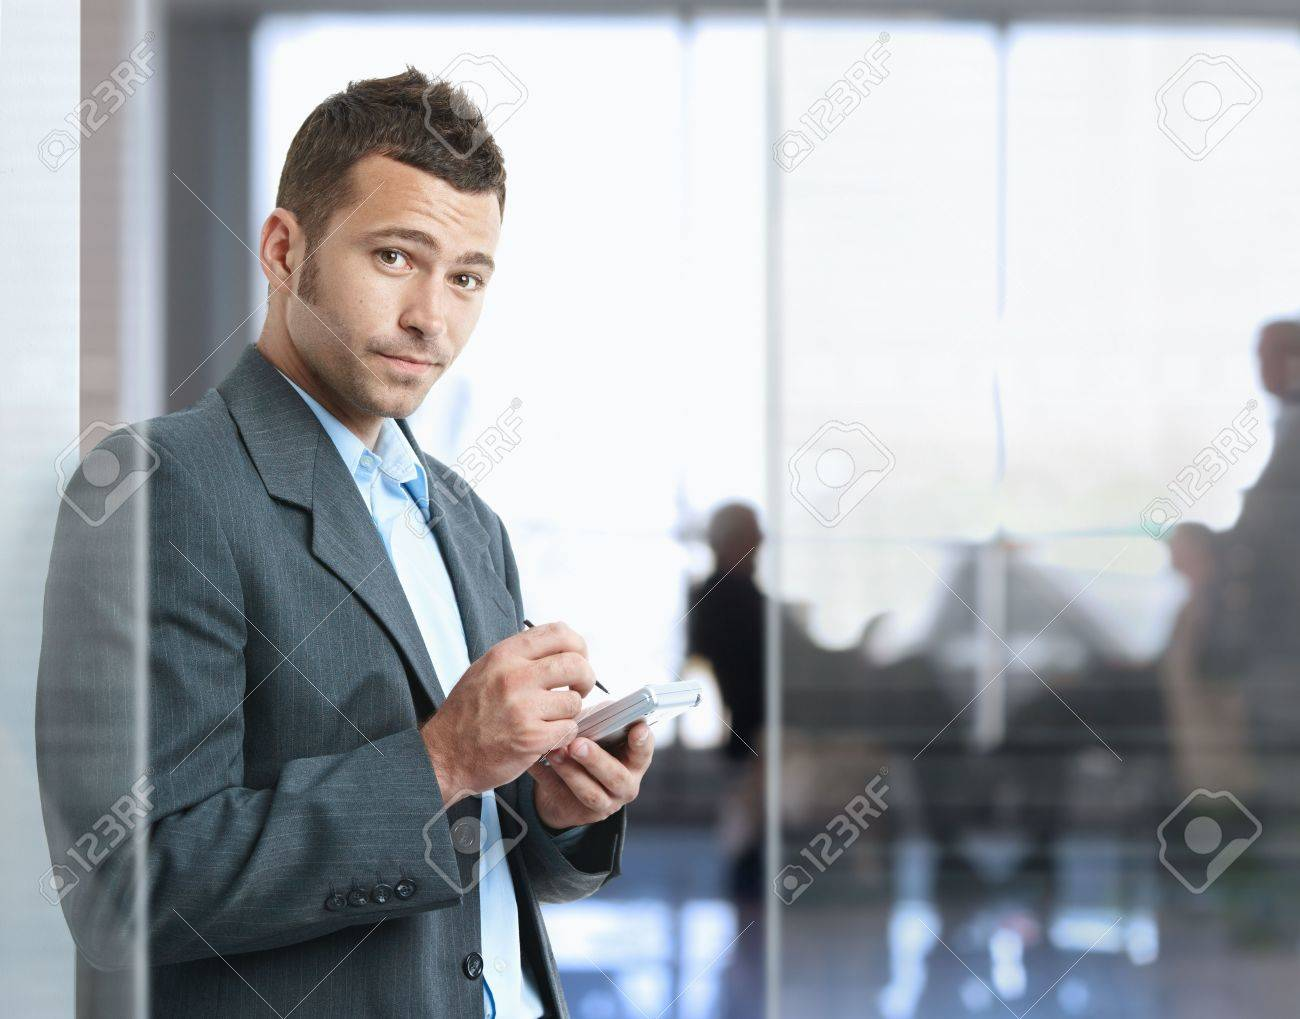 Serious businessman standing in office lobby , using smart phone, looking at camera. Stock Photo - 5758767